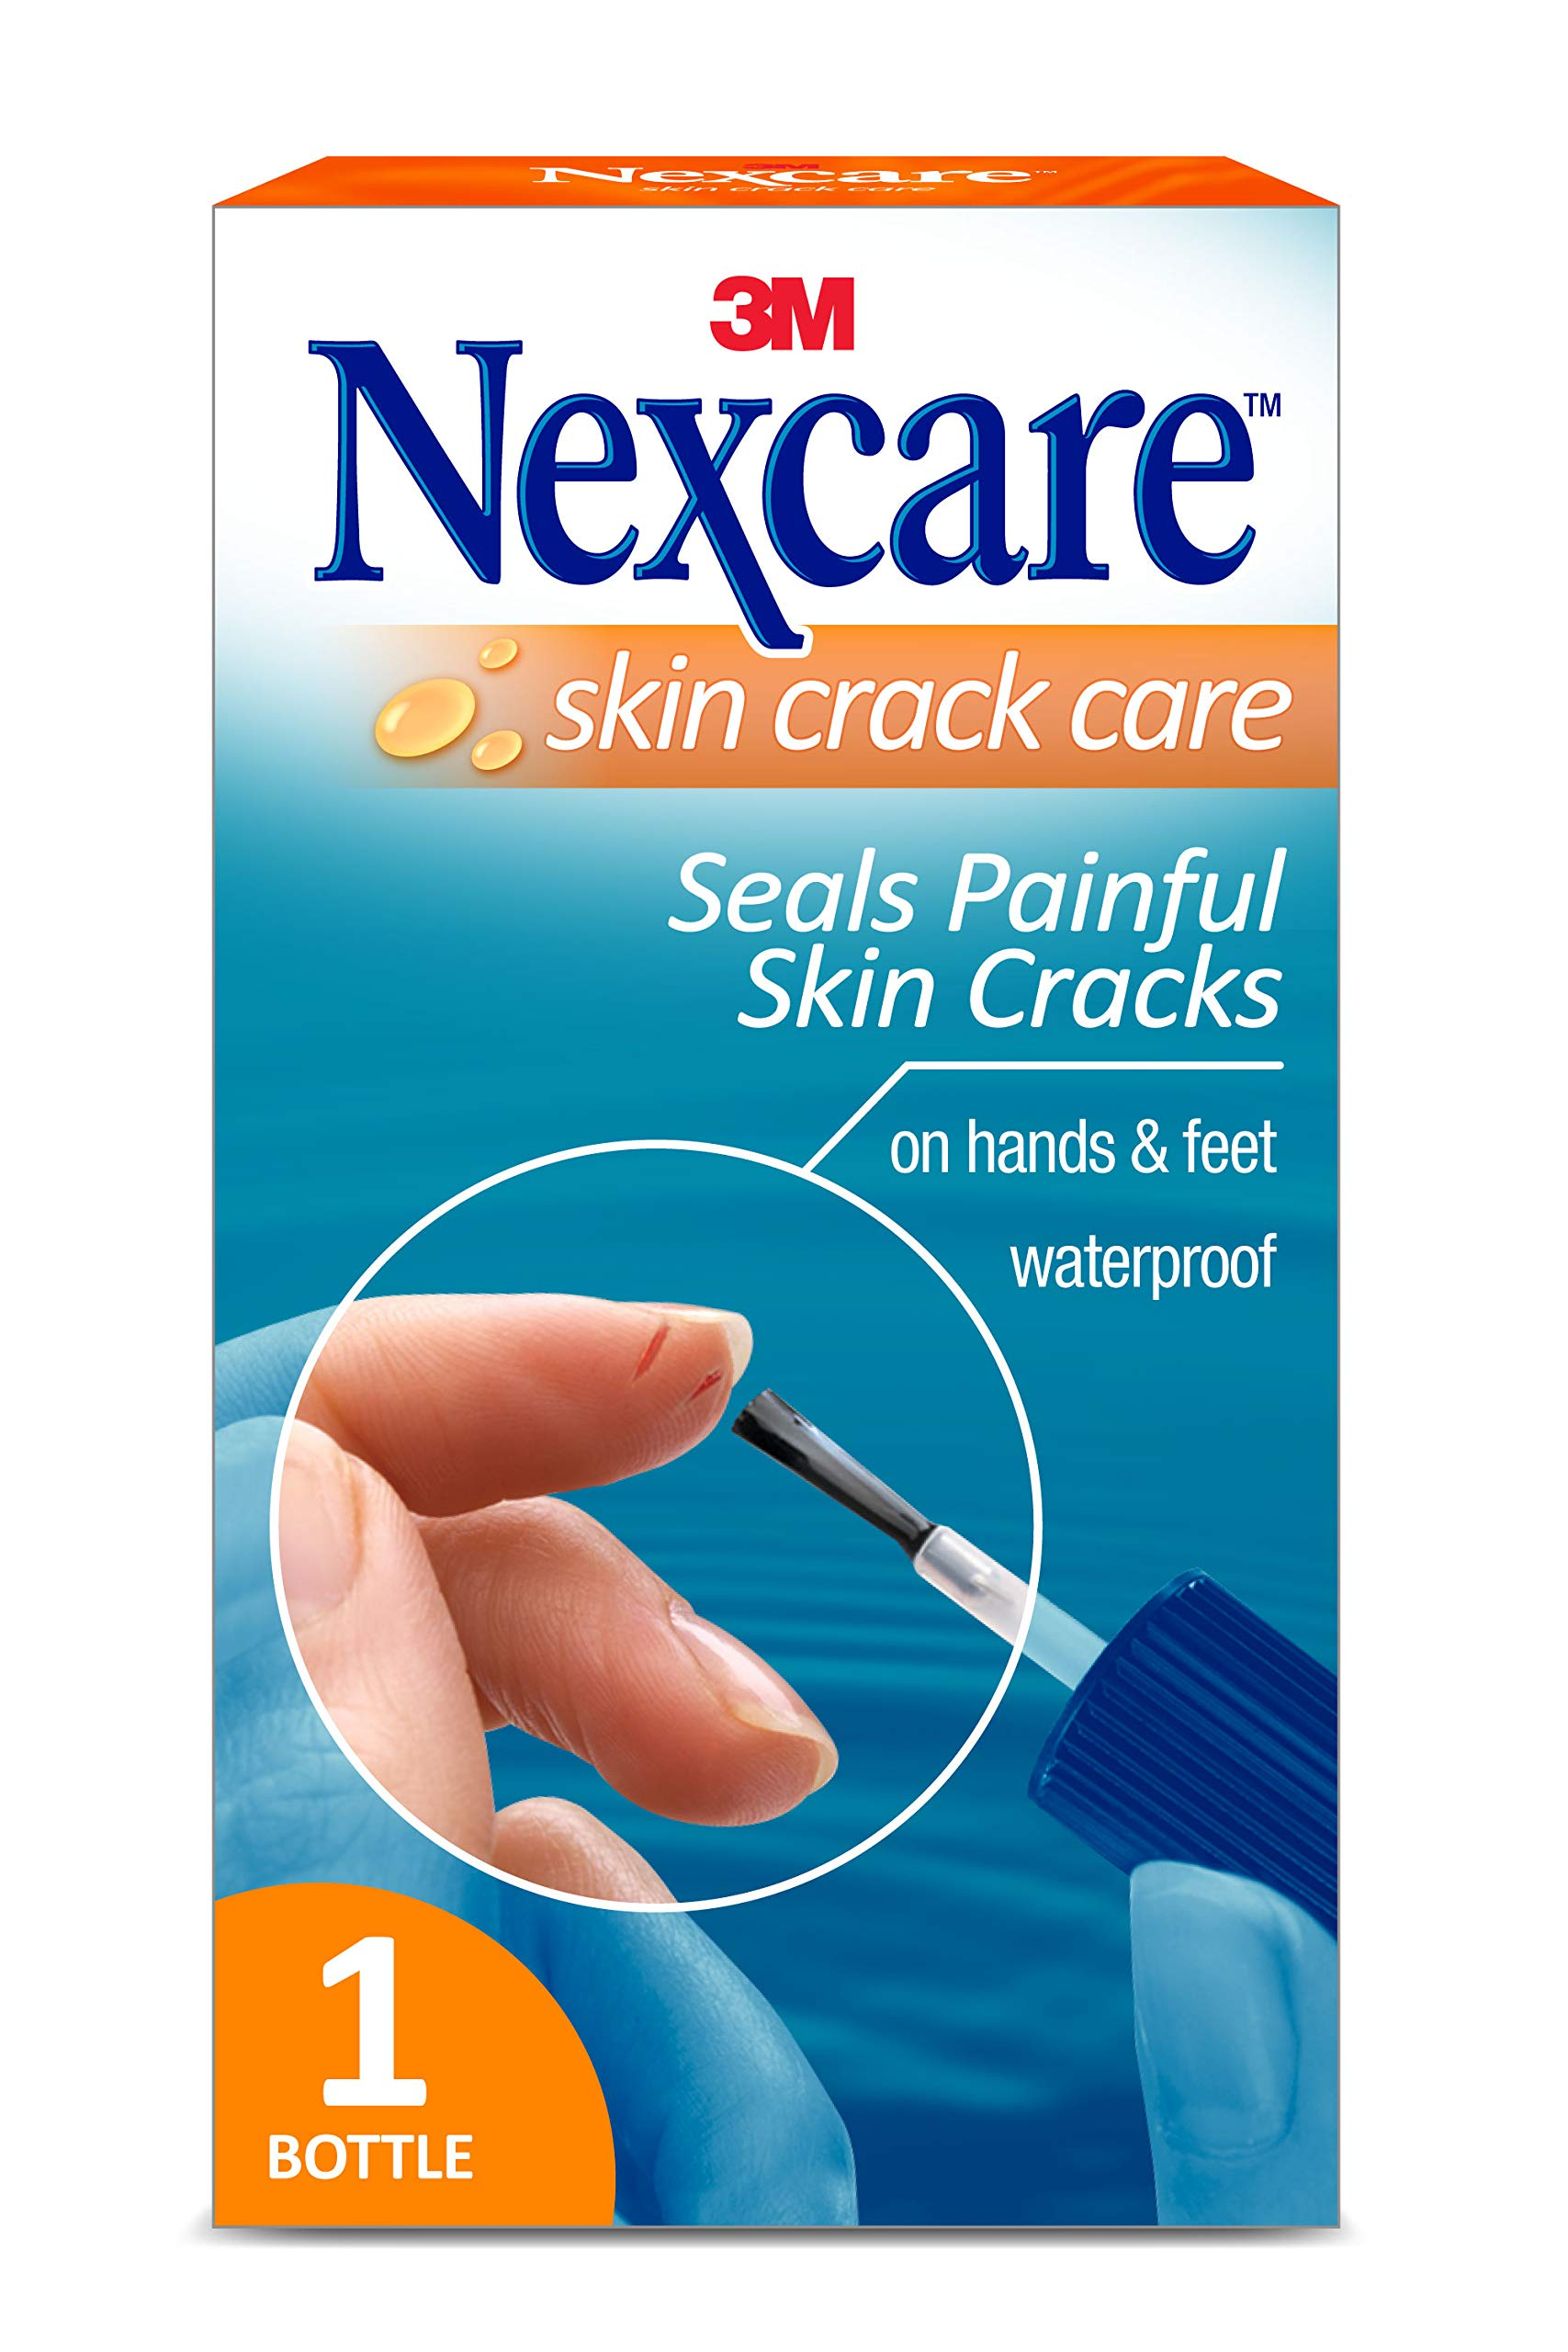 Nexcare Skin Crack Care, Liquid Bandage, Great for Use on Fingers, Hands and Feet, No Sting, Waterproof, 1 Bottle